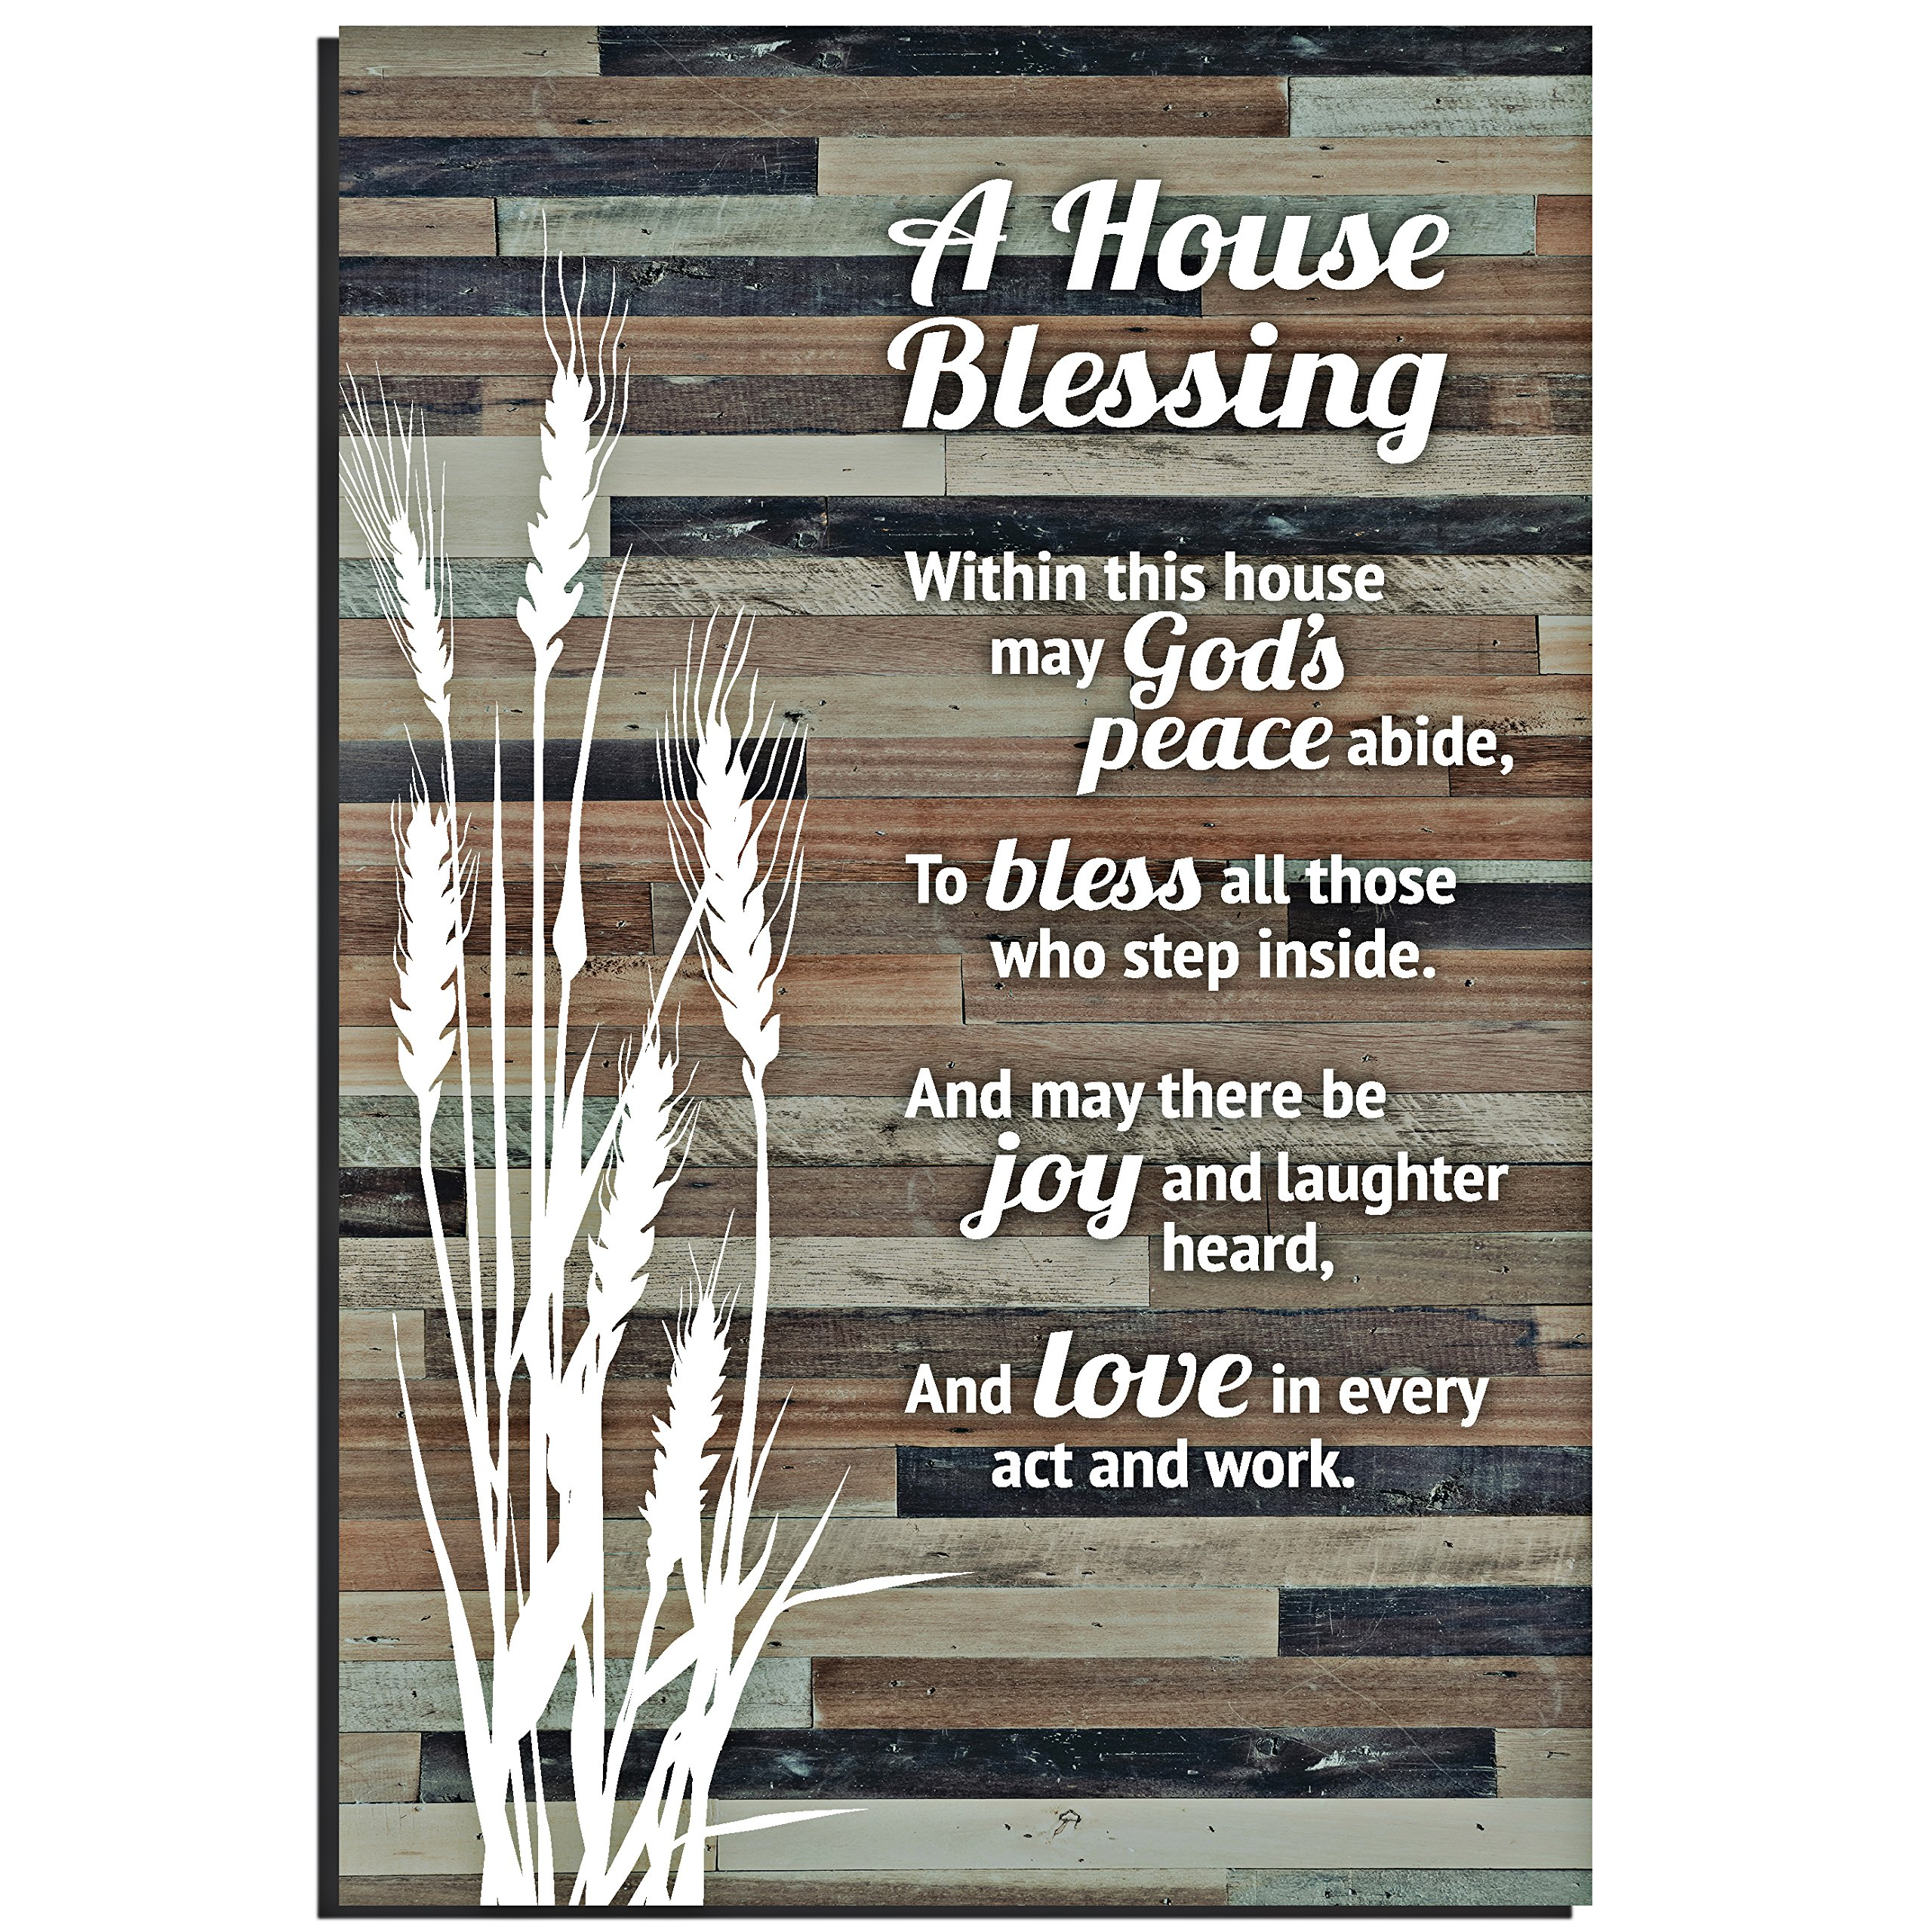 House Blessing Rustic Wood Plaque – Easel & Hanging Hook 6×9 Inch – Vertical Plaques Wall Art & Tabletop Decoration for Your Home or Office   A House Blessing within this house may Gods Peace abide…